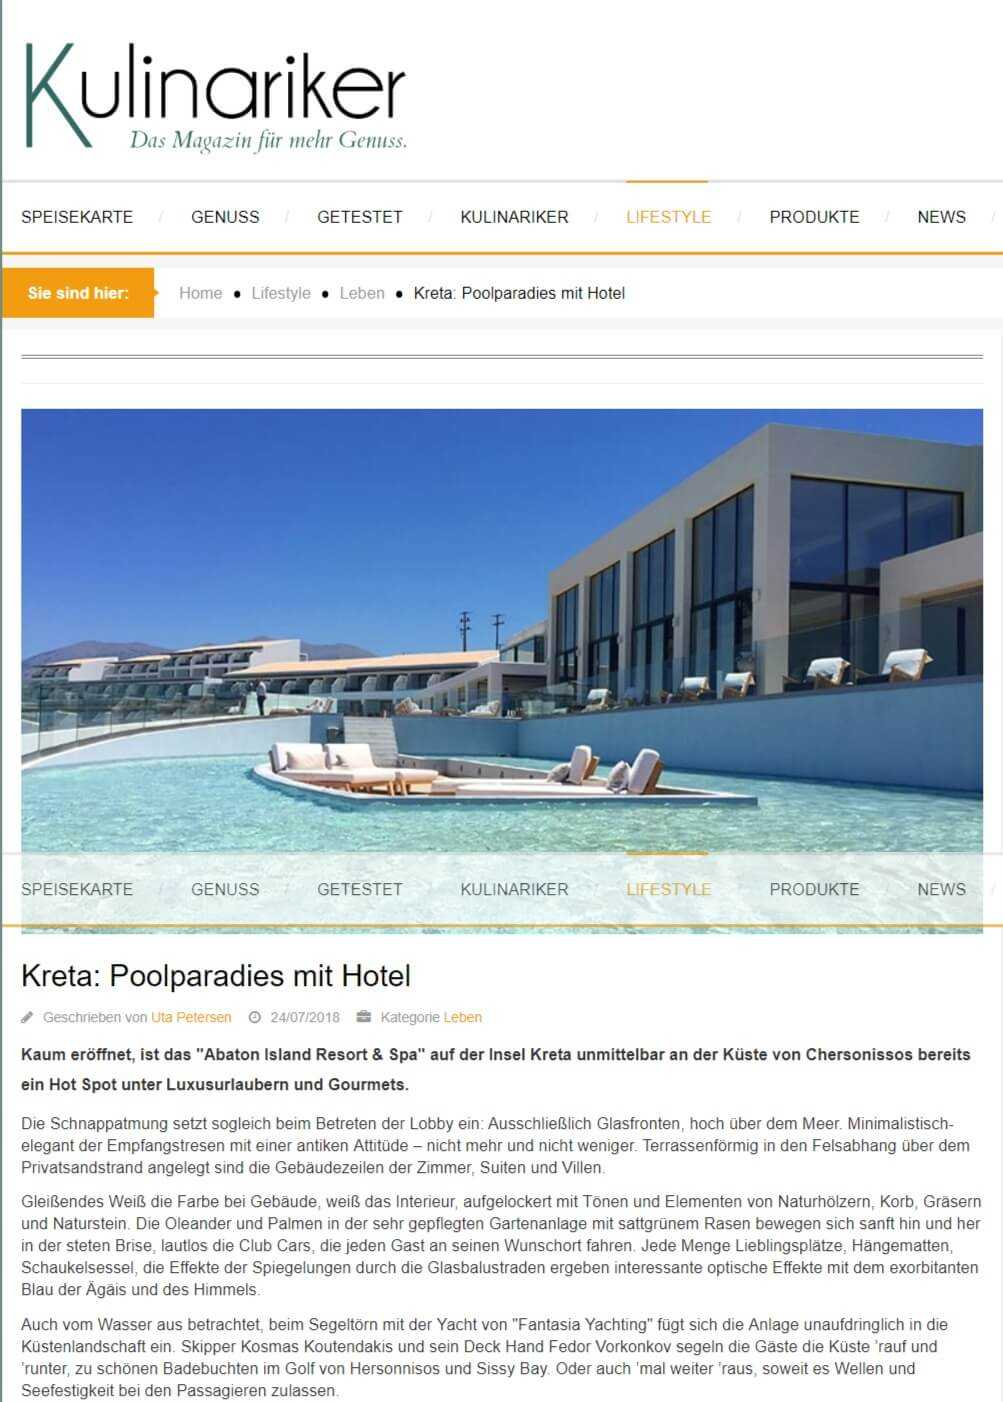 Crete: Pool paradise with hotel